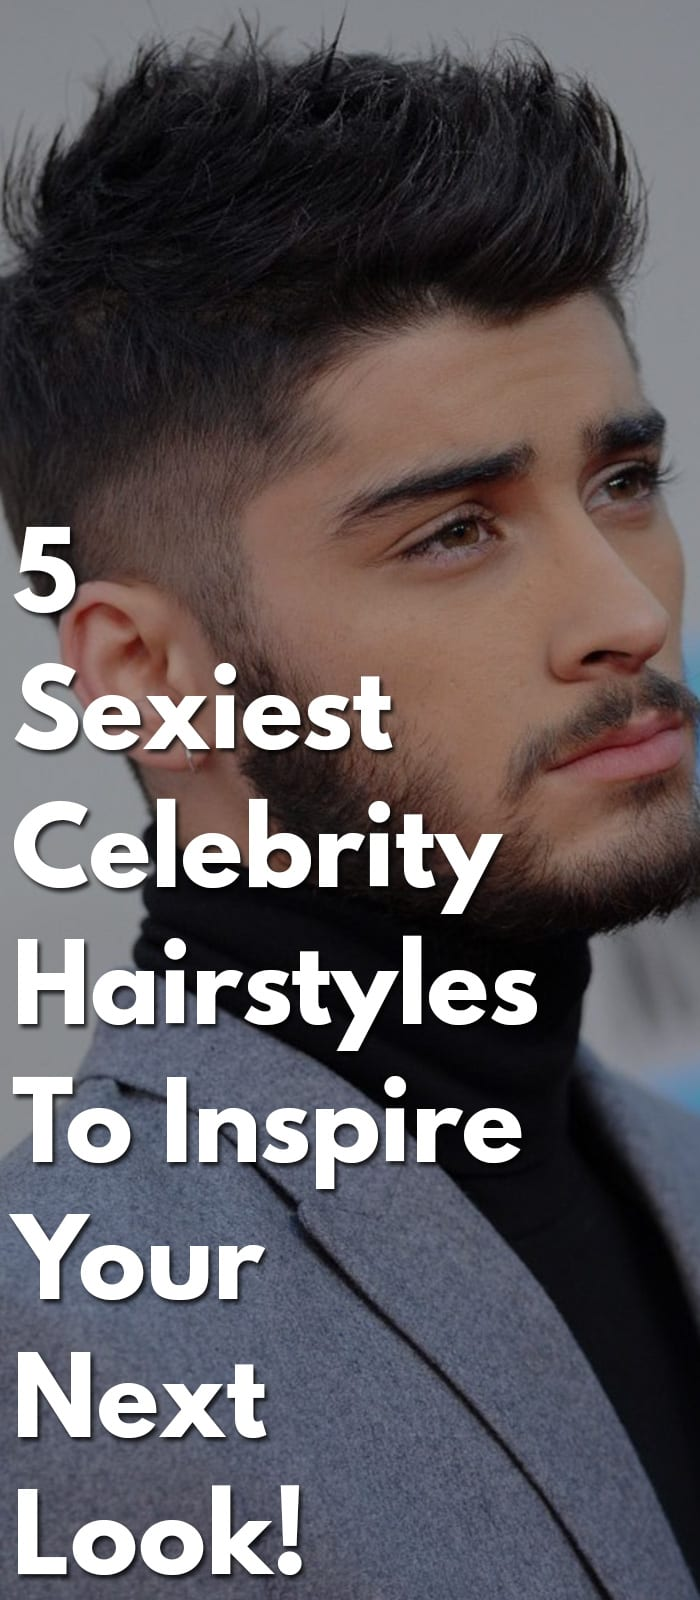 5-Sexiest-Celebrity-Hairstyles-To-Inspire-Your-Next-Look!.